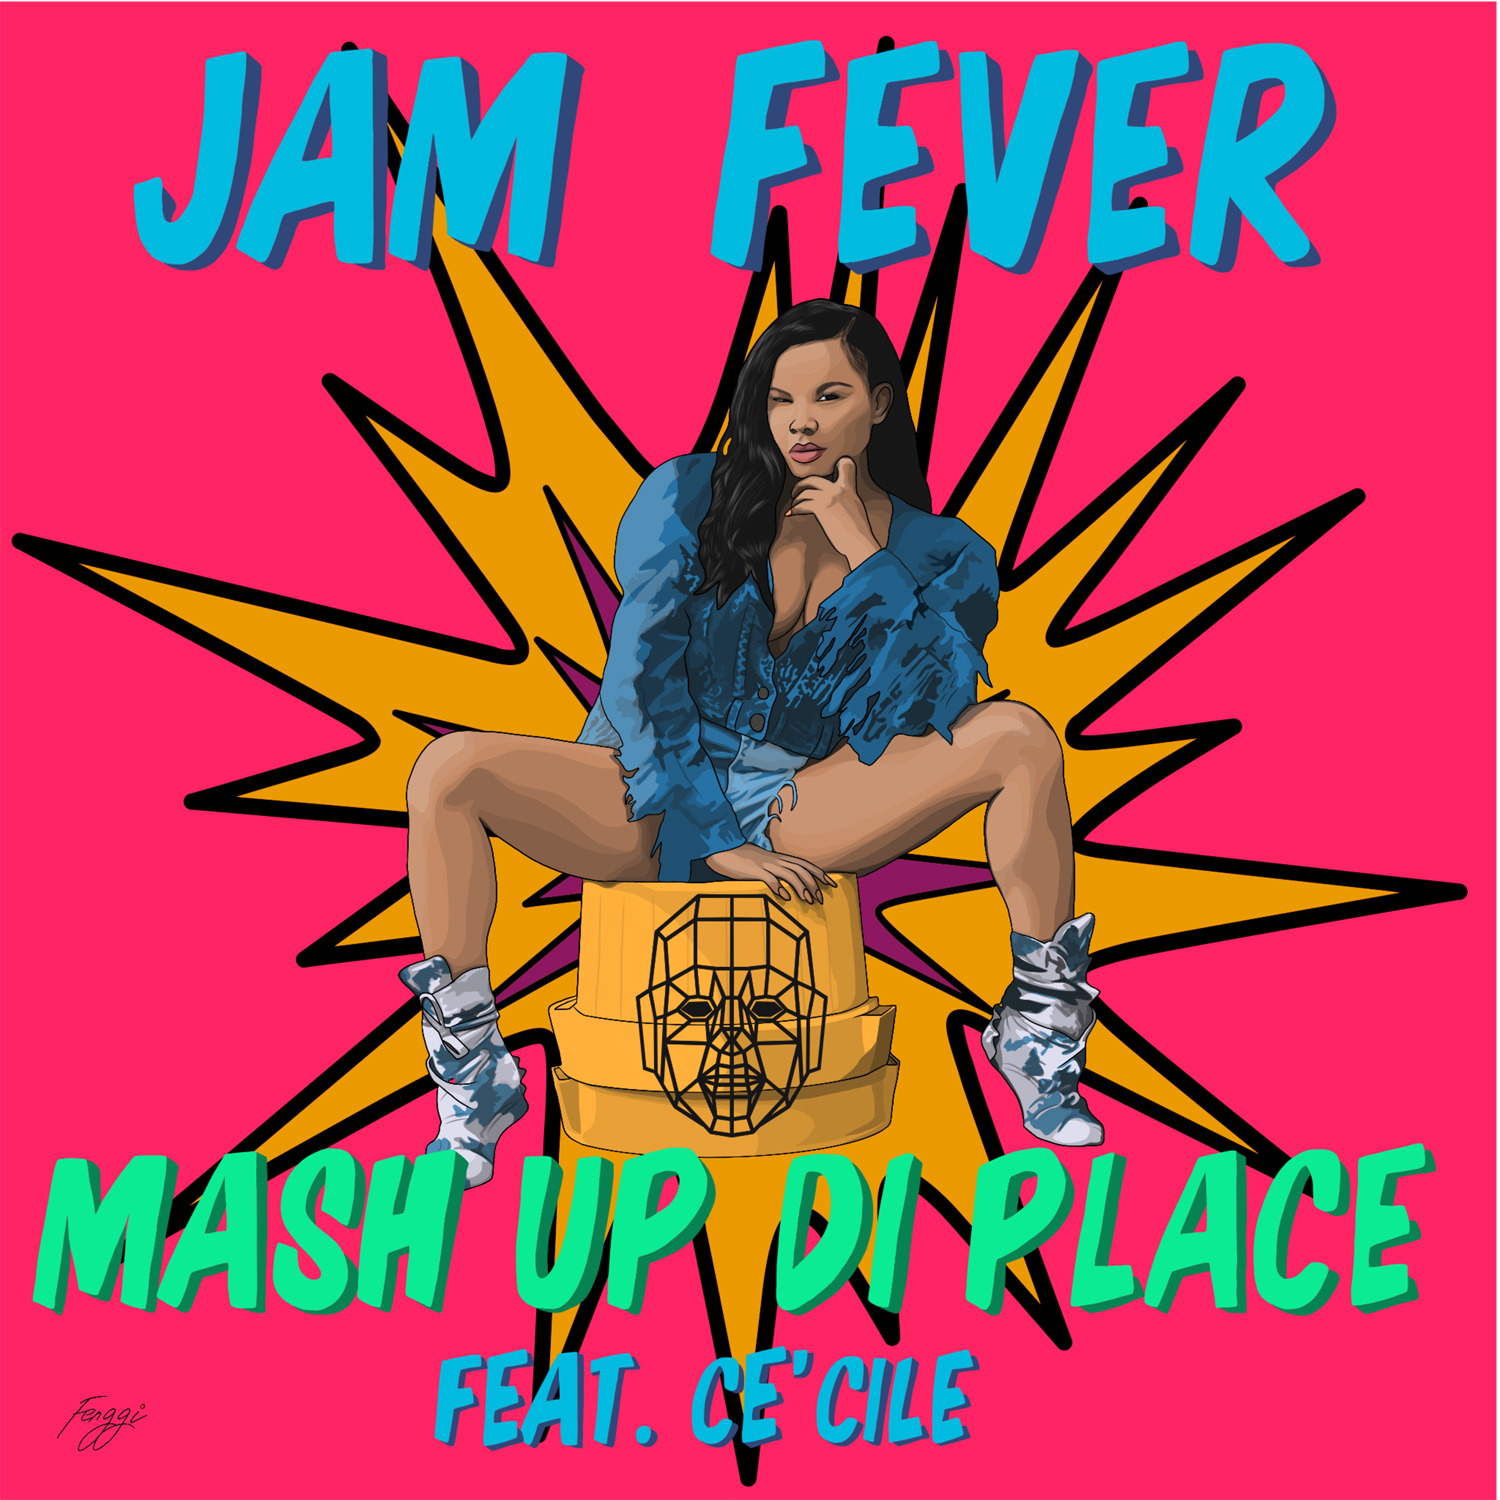 JAM FEVER - MASH UP DI PLACE FT CE'CILE